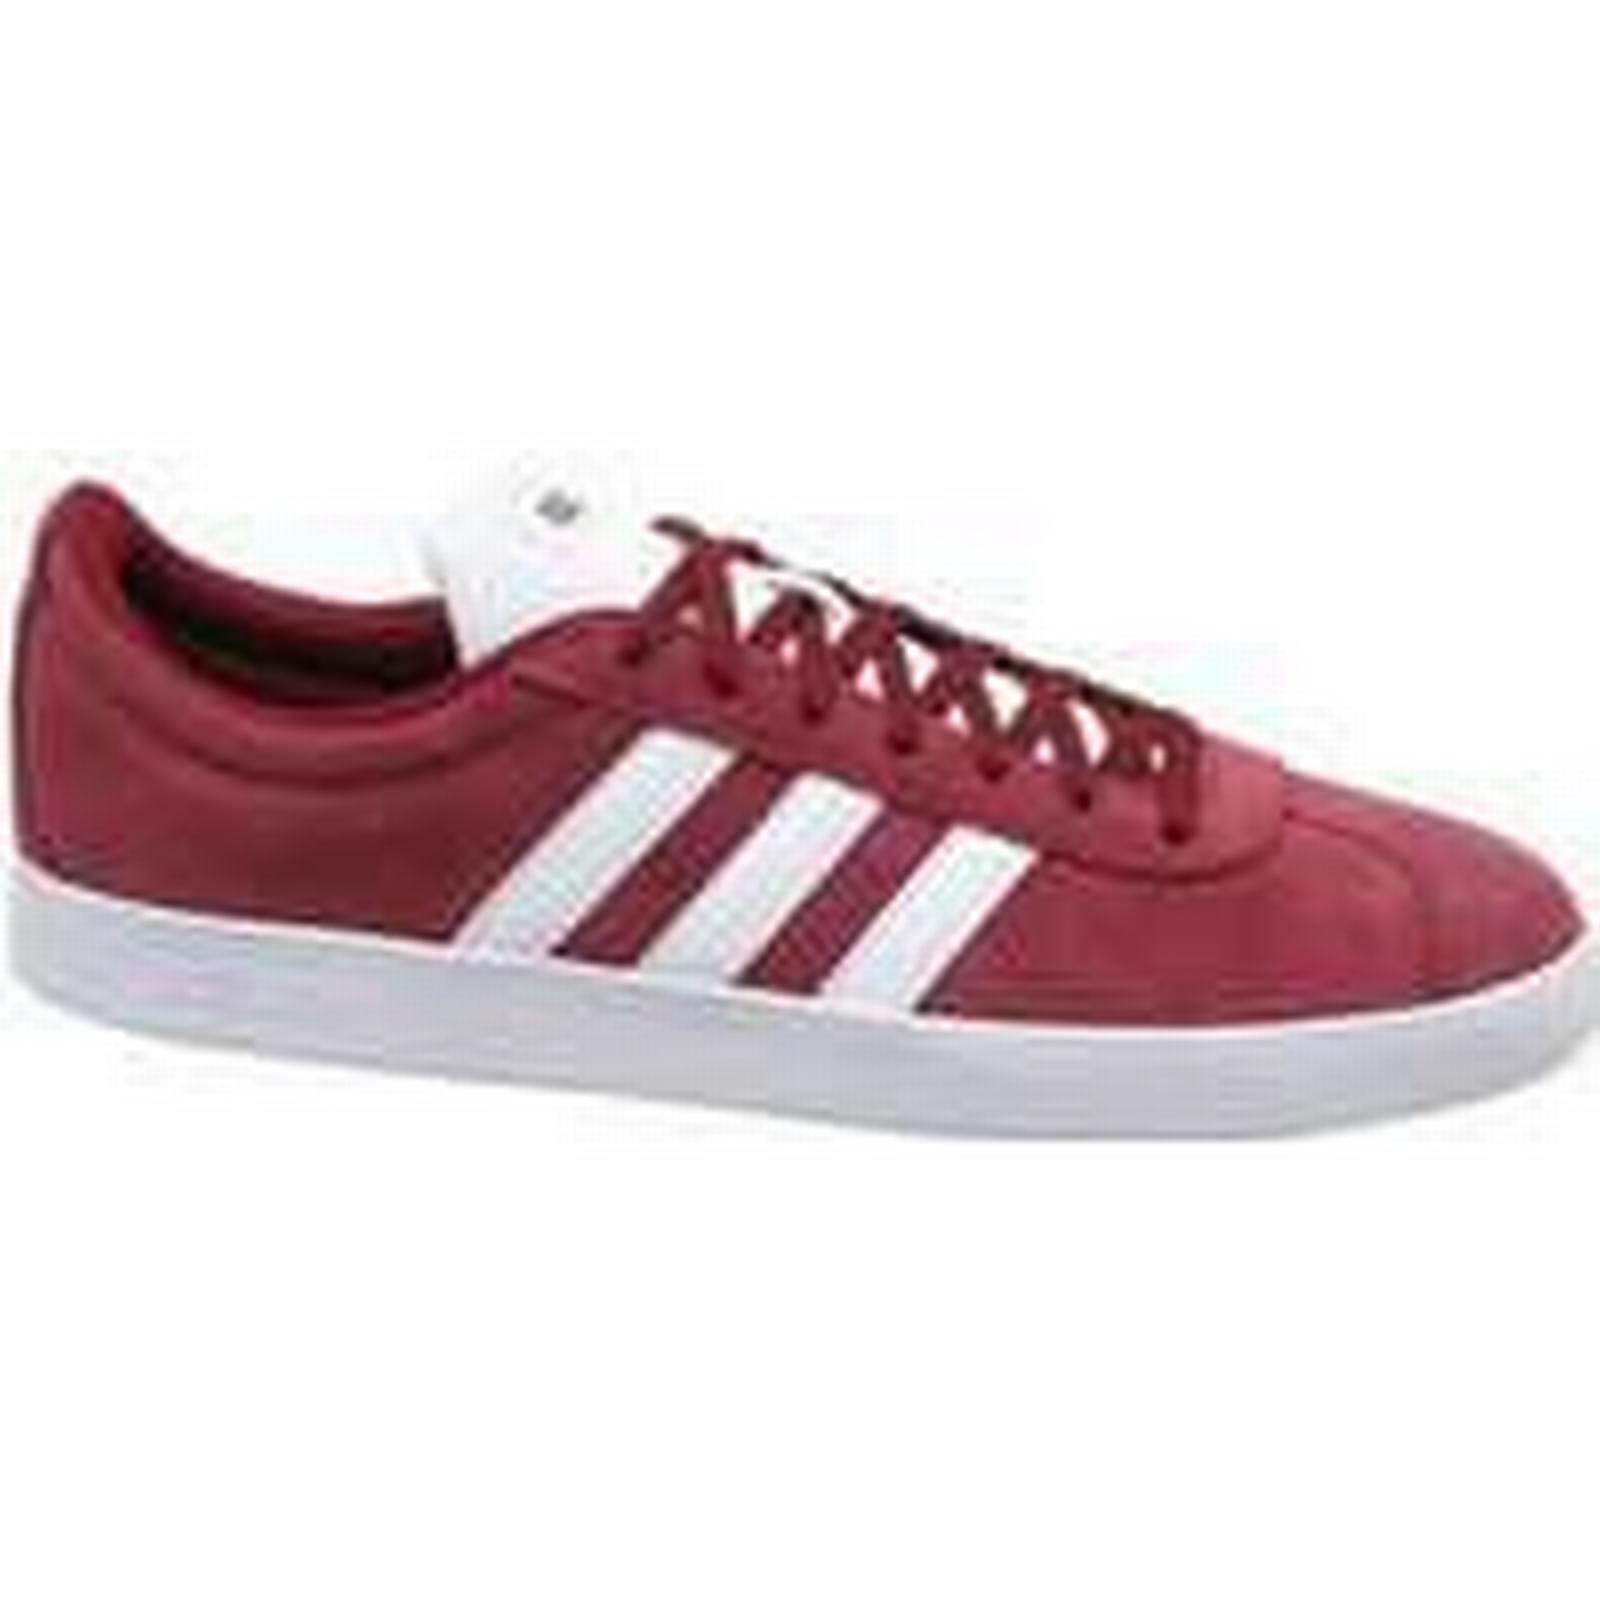 adidas tf cour hommes hommes hommes a6b4ec